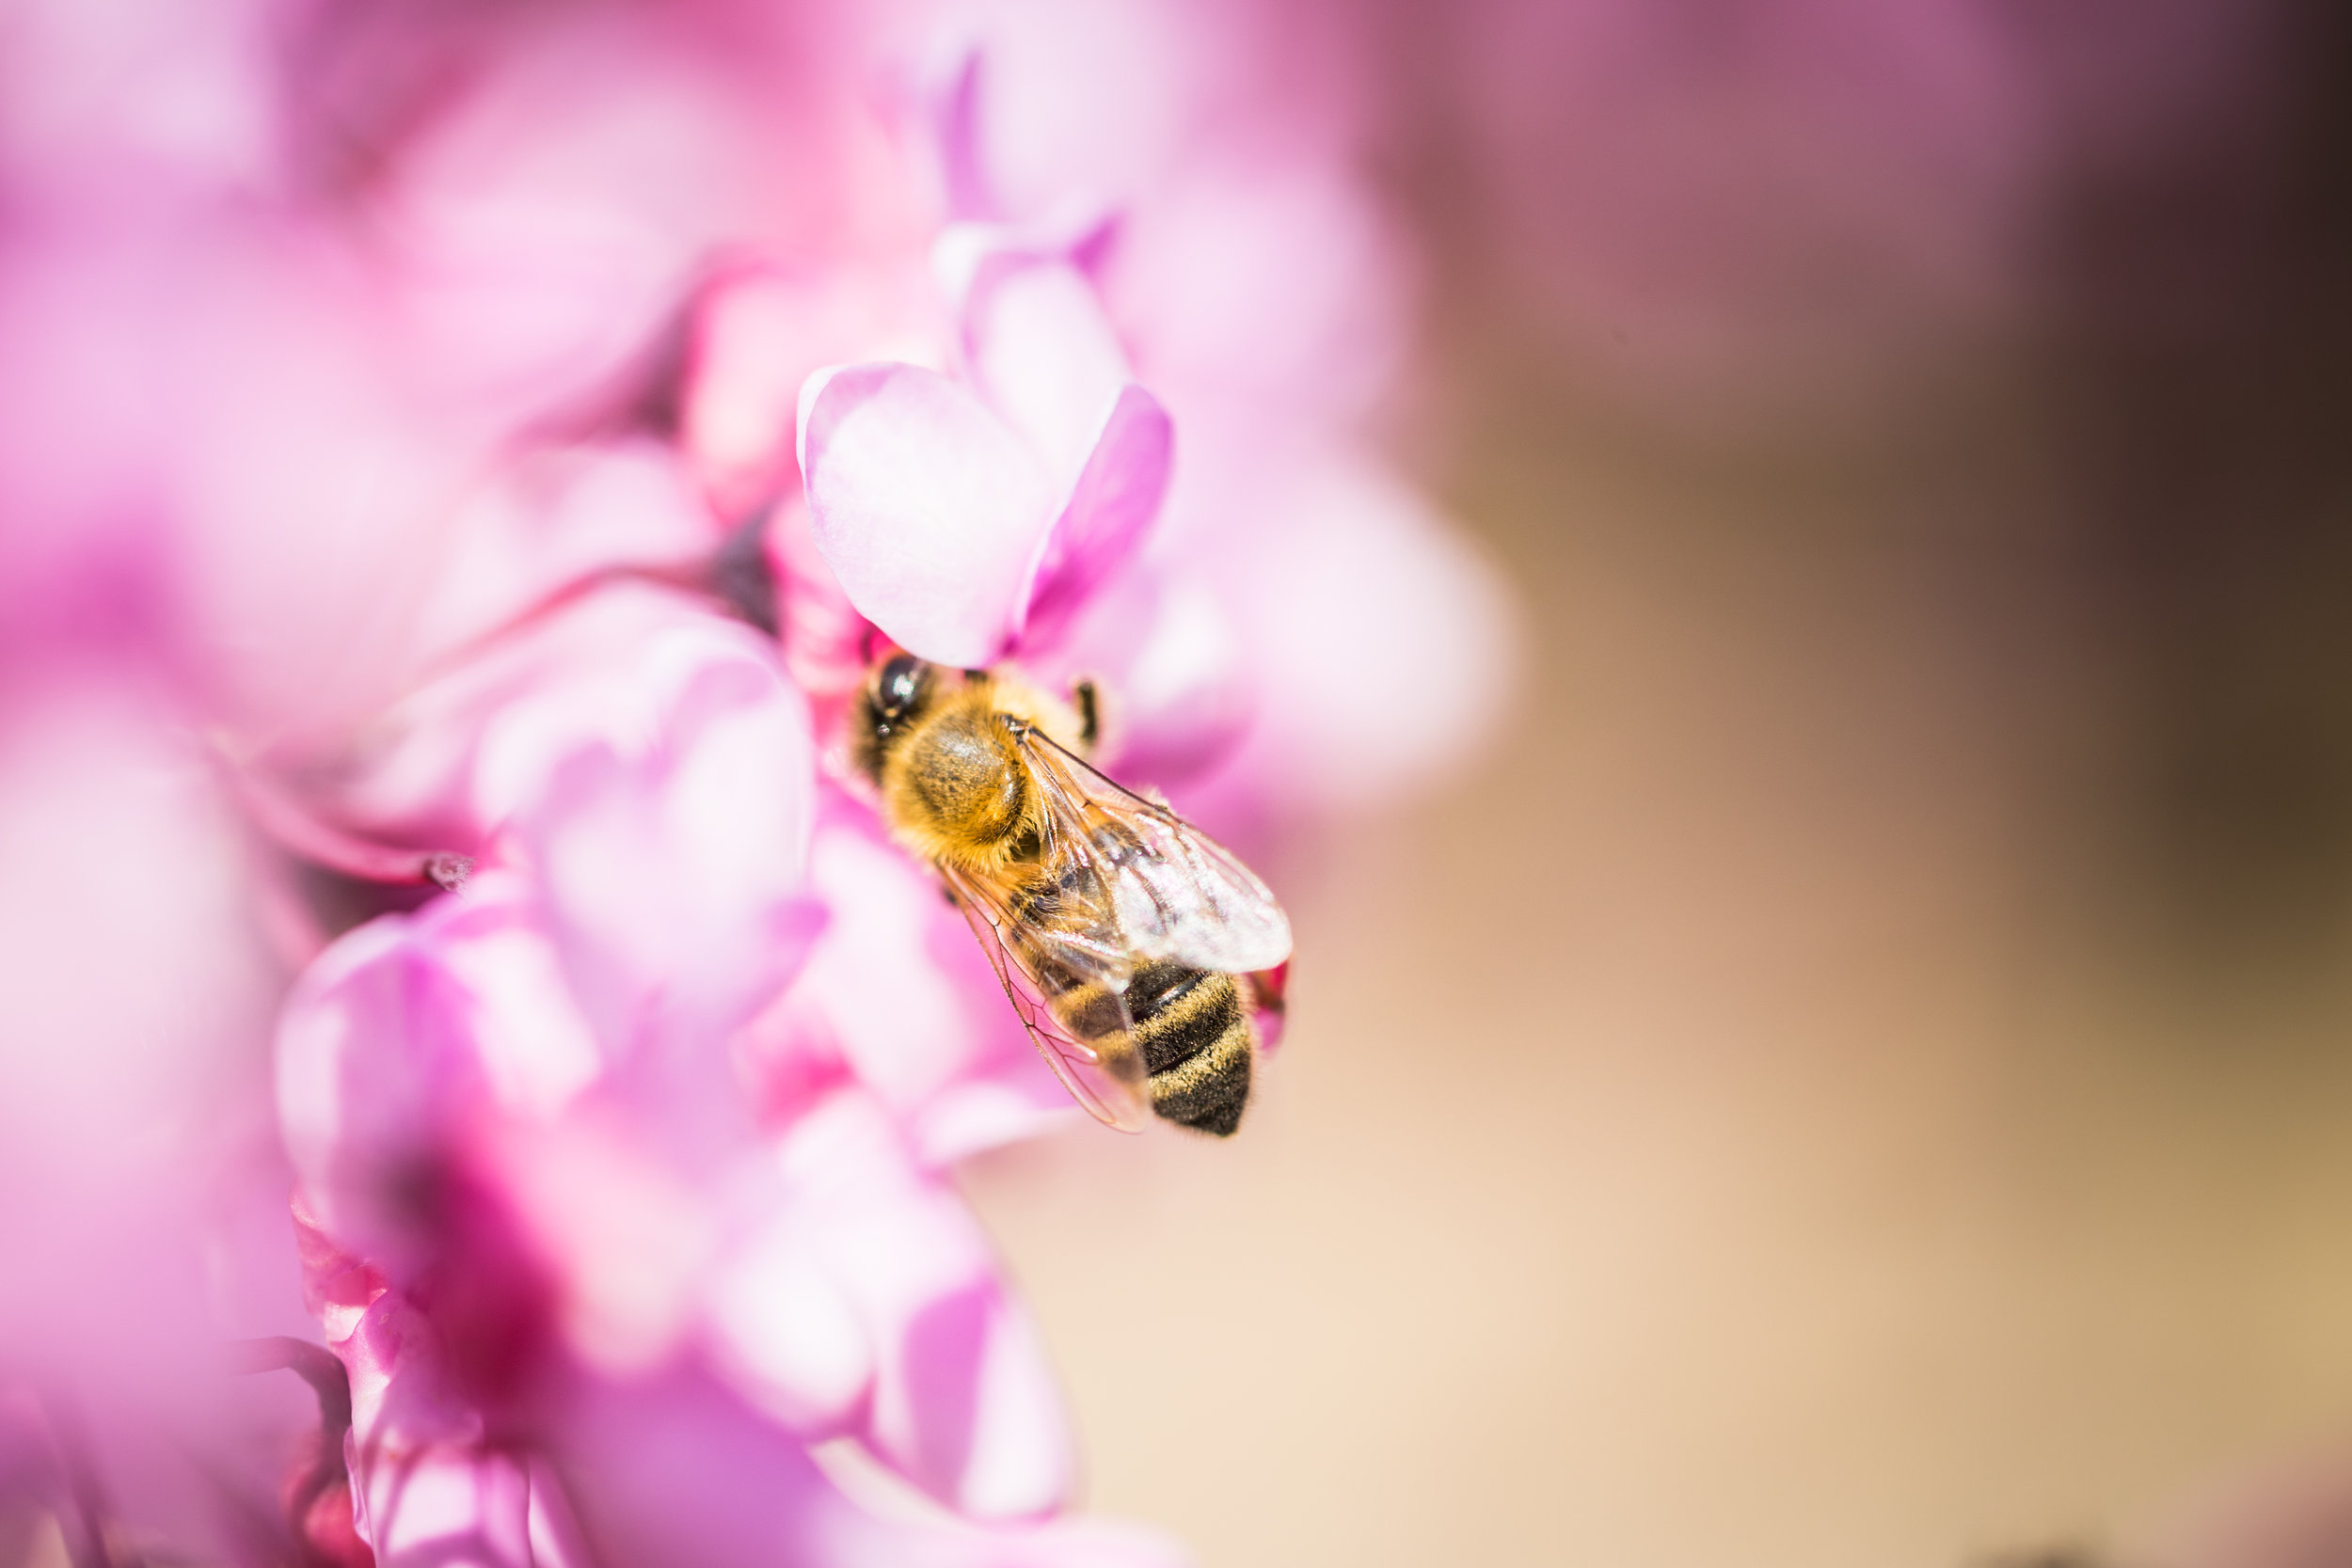 bee-at-work-close-up-picjumbo-com.jpg